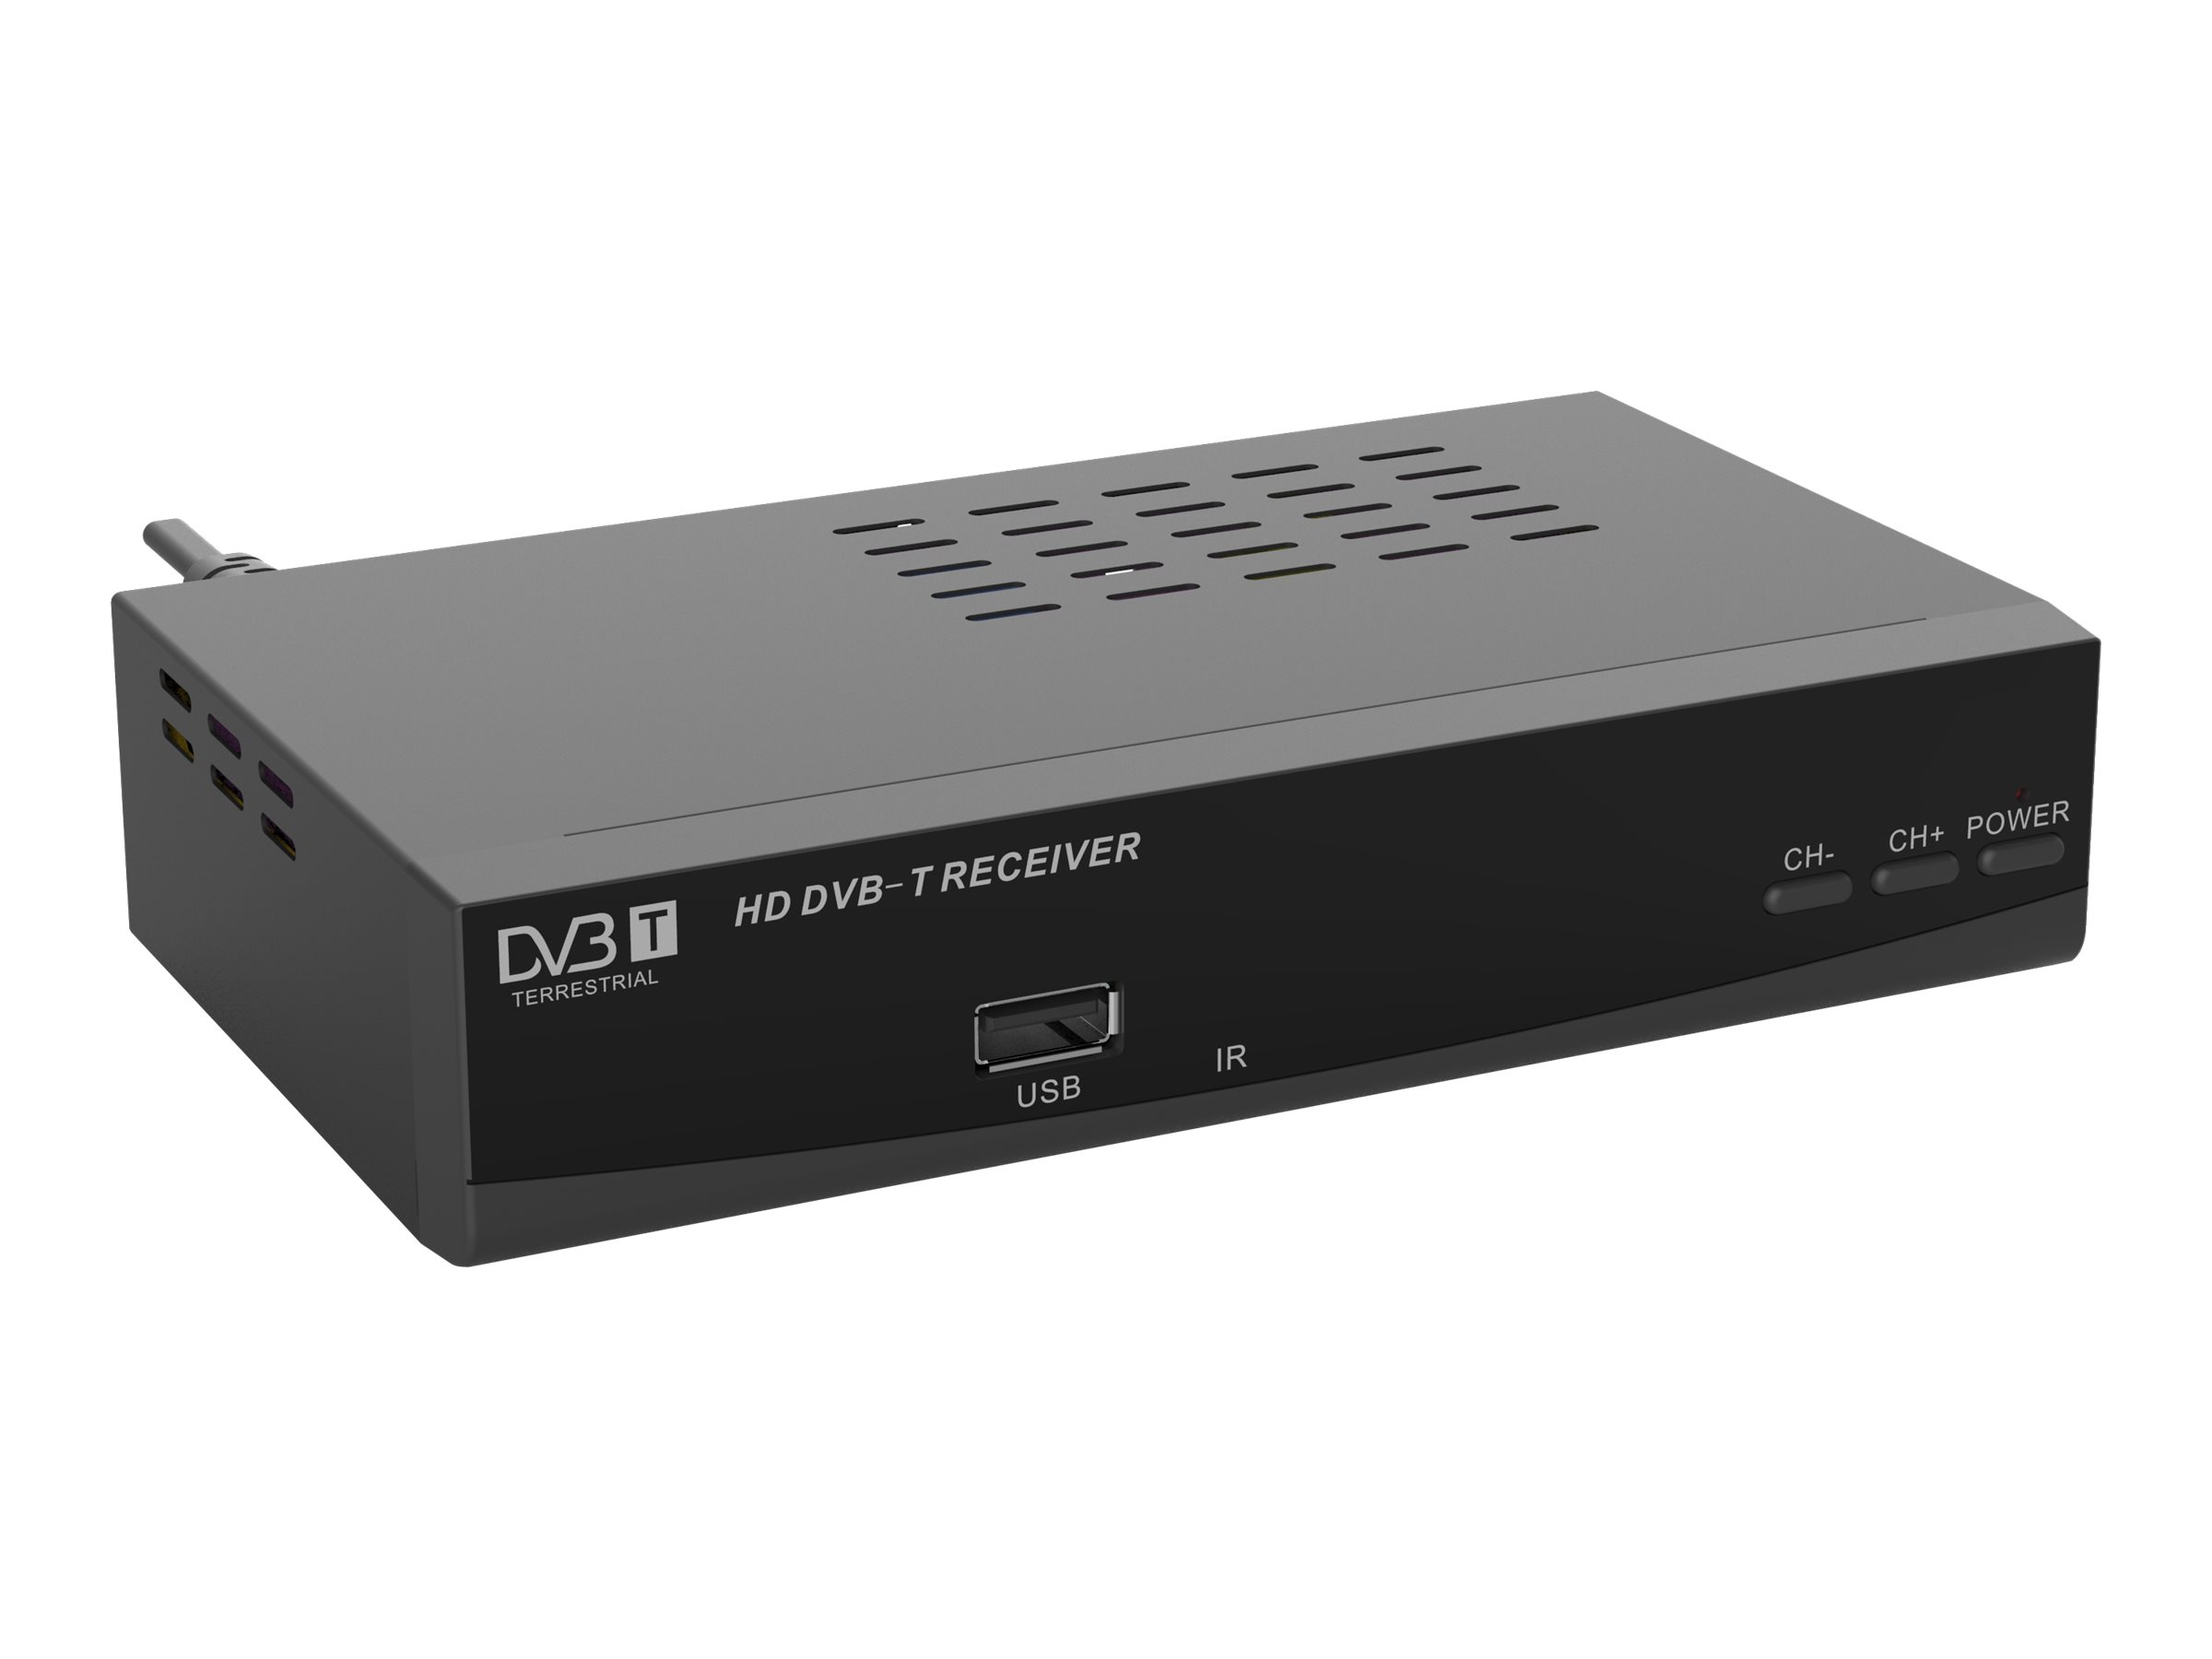 DENVER DTB-136H - DVB-Digital-TV-Tuner/Digital-Player